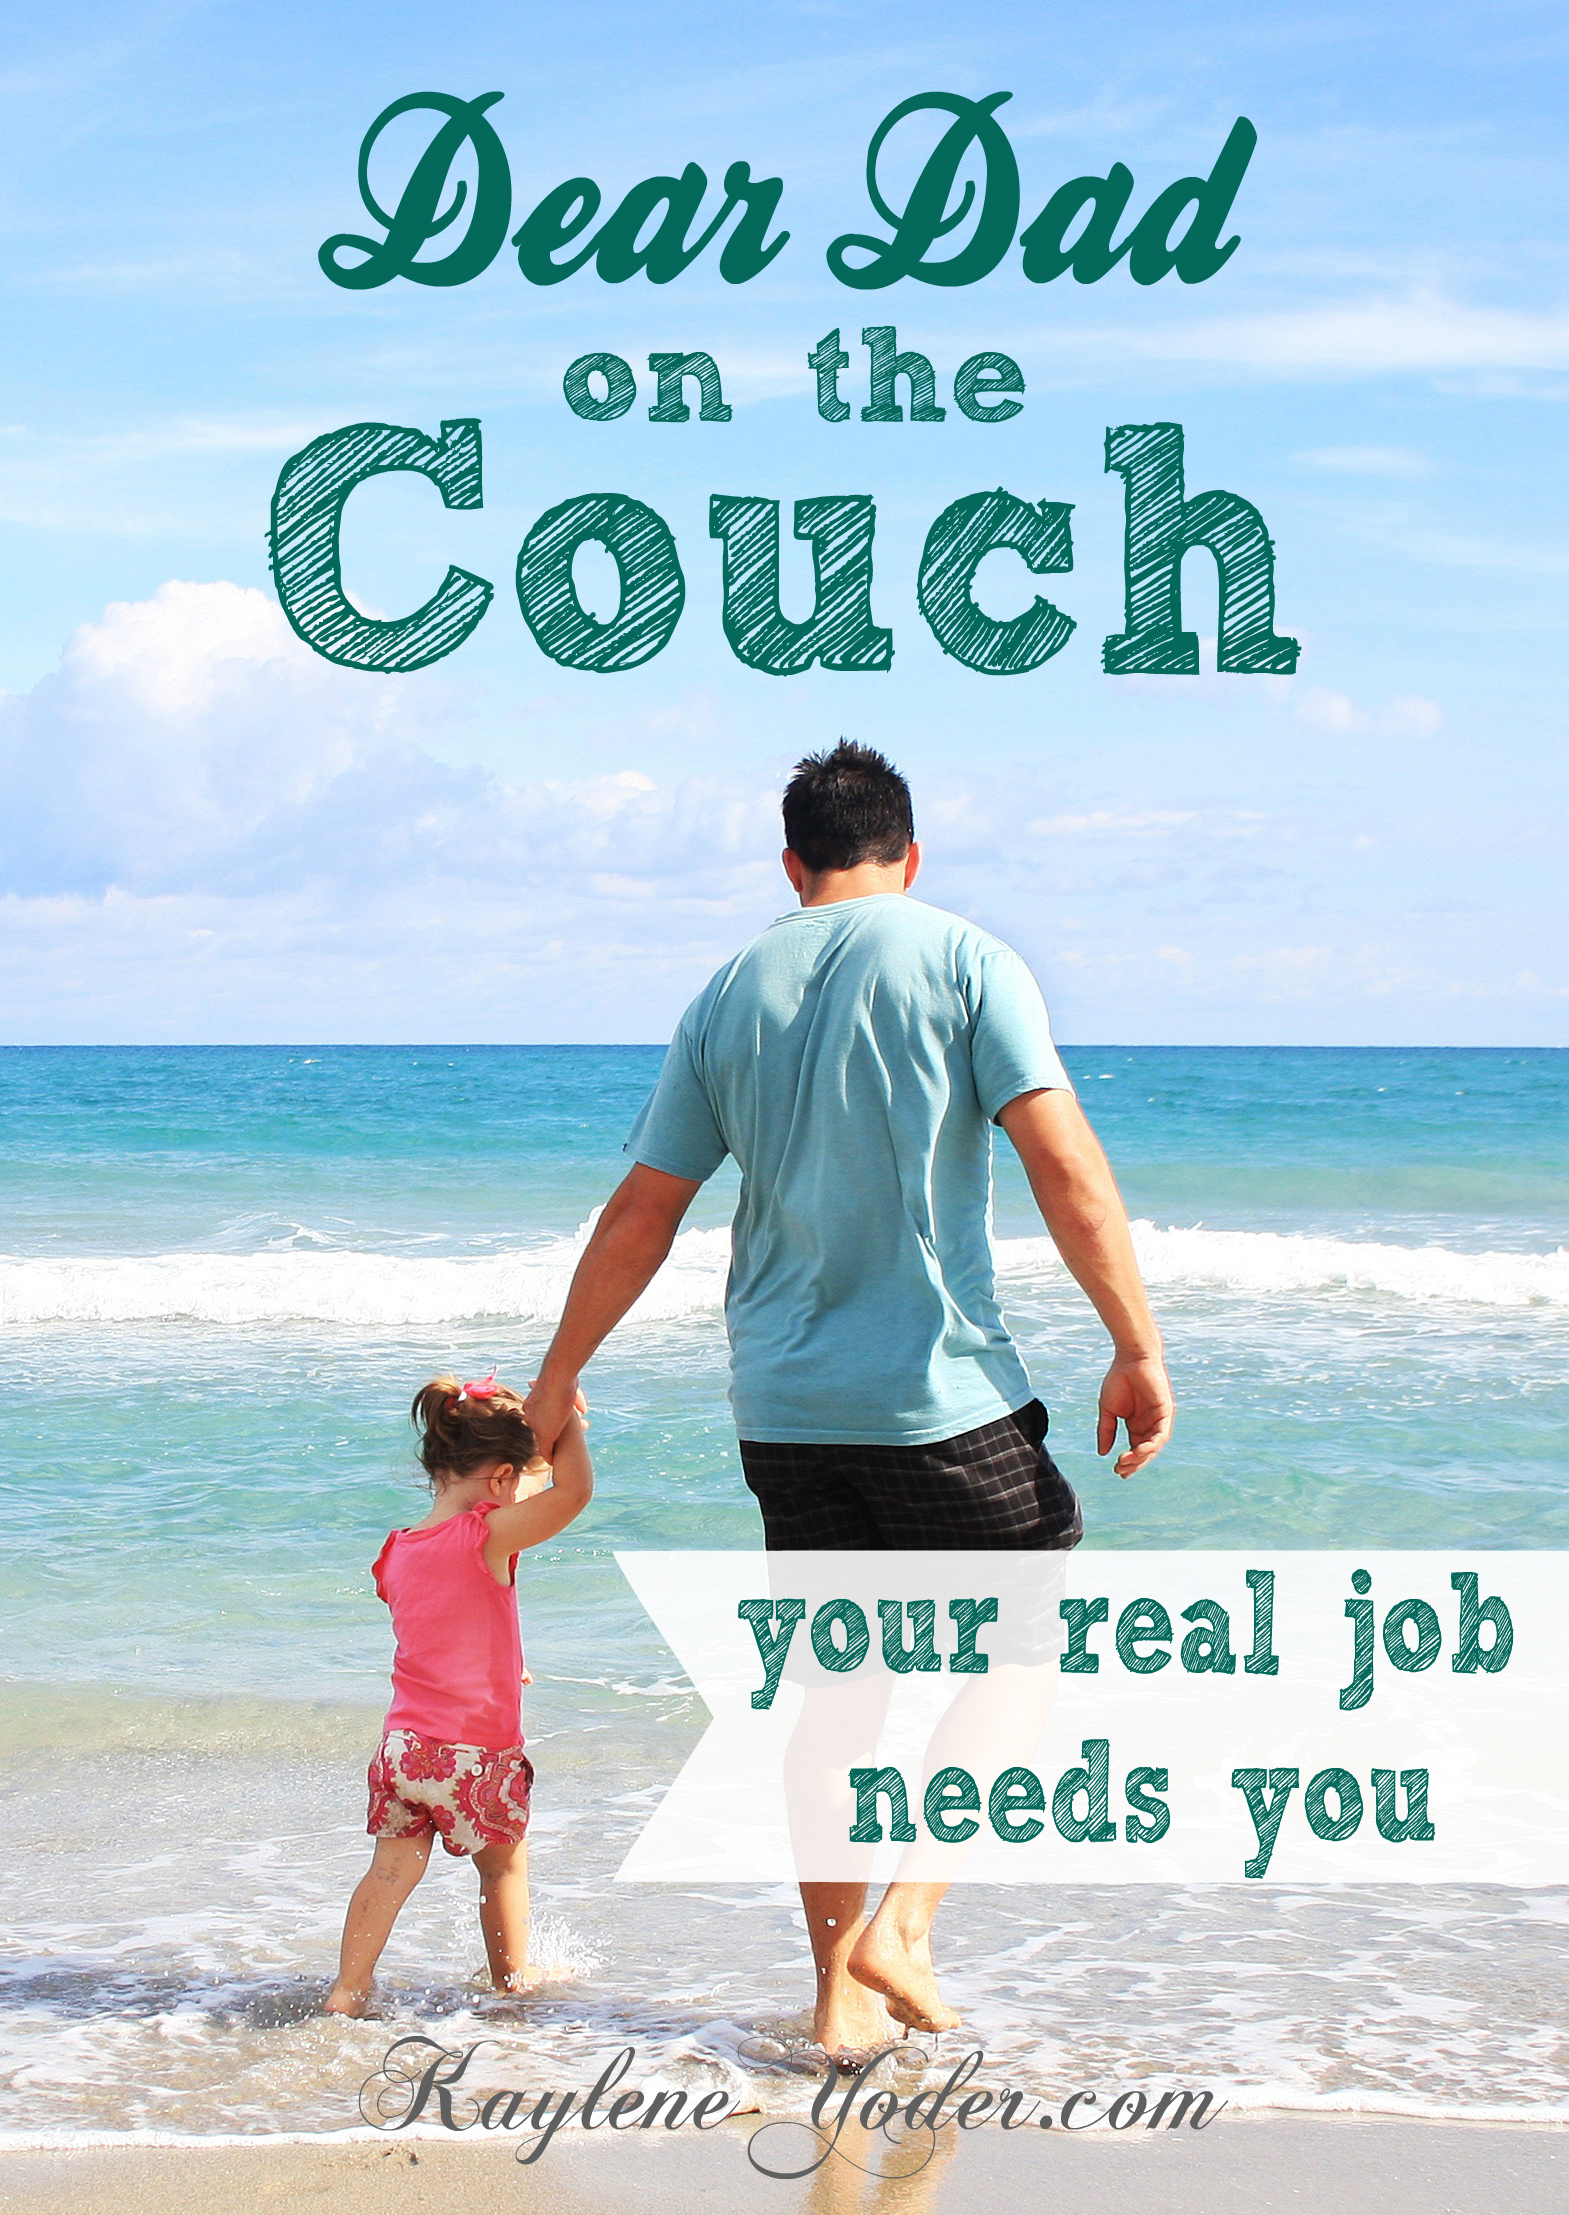 Dear Dad on the Couch